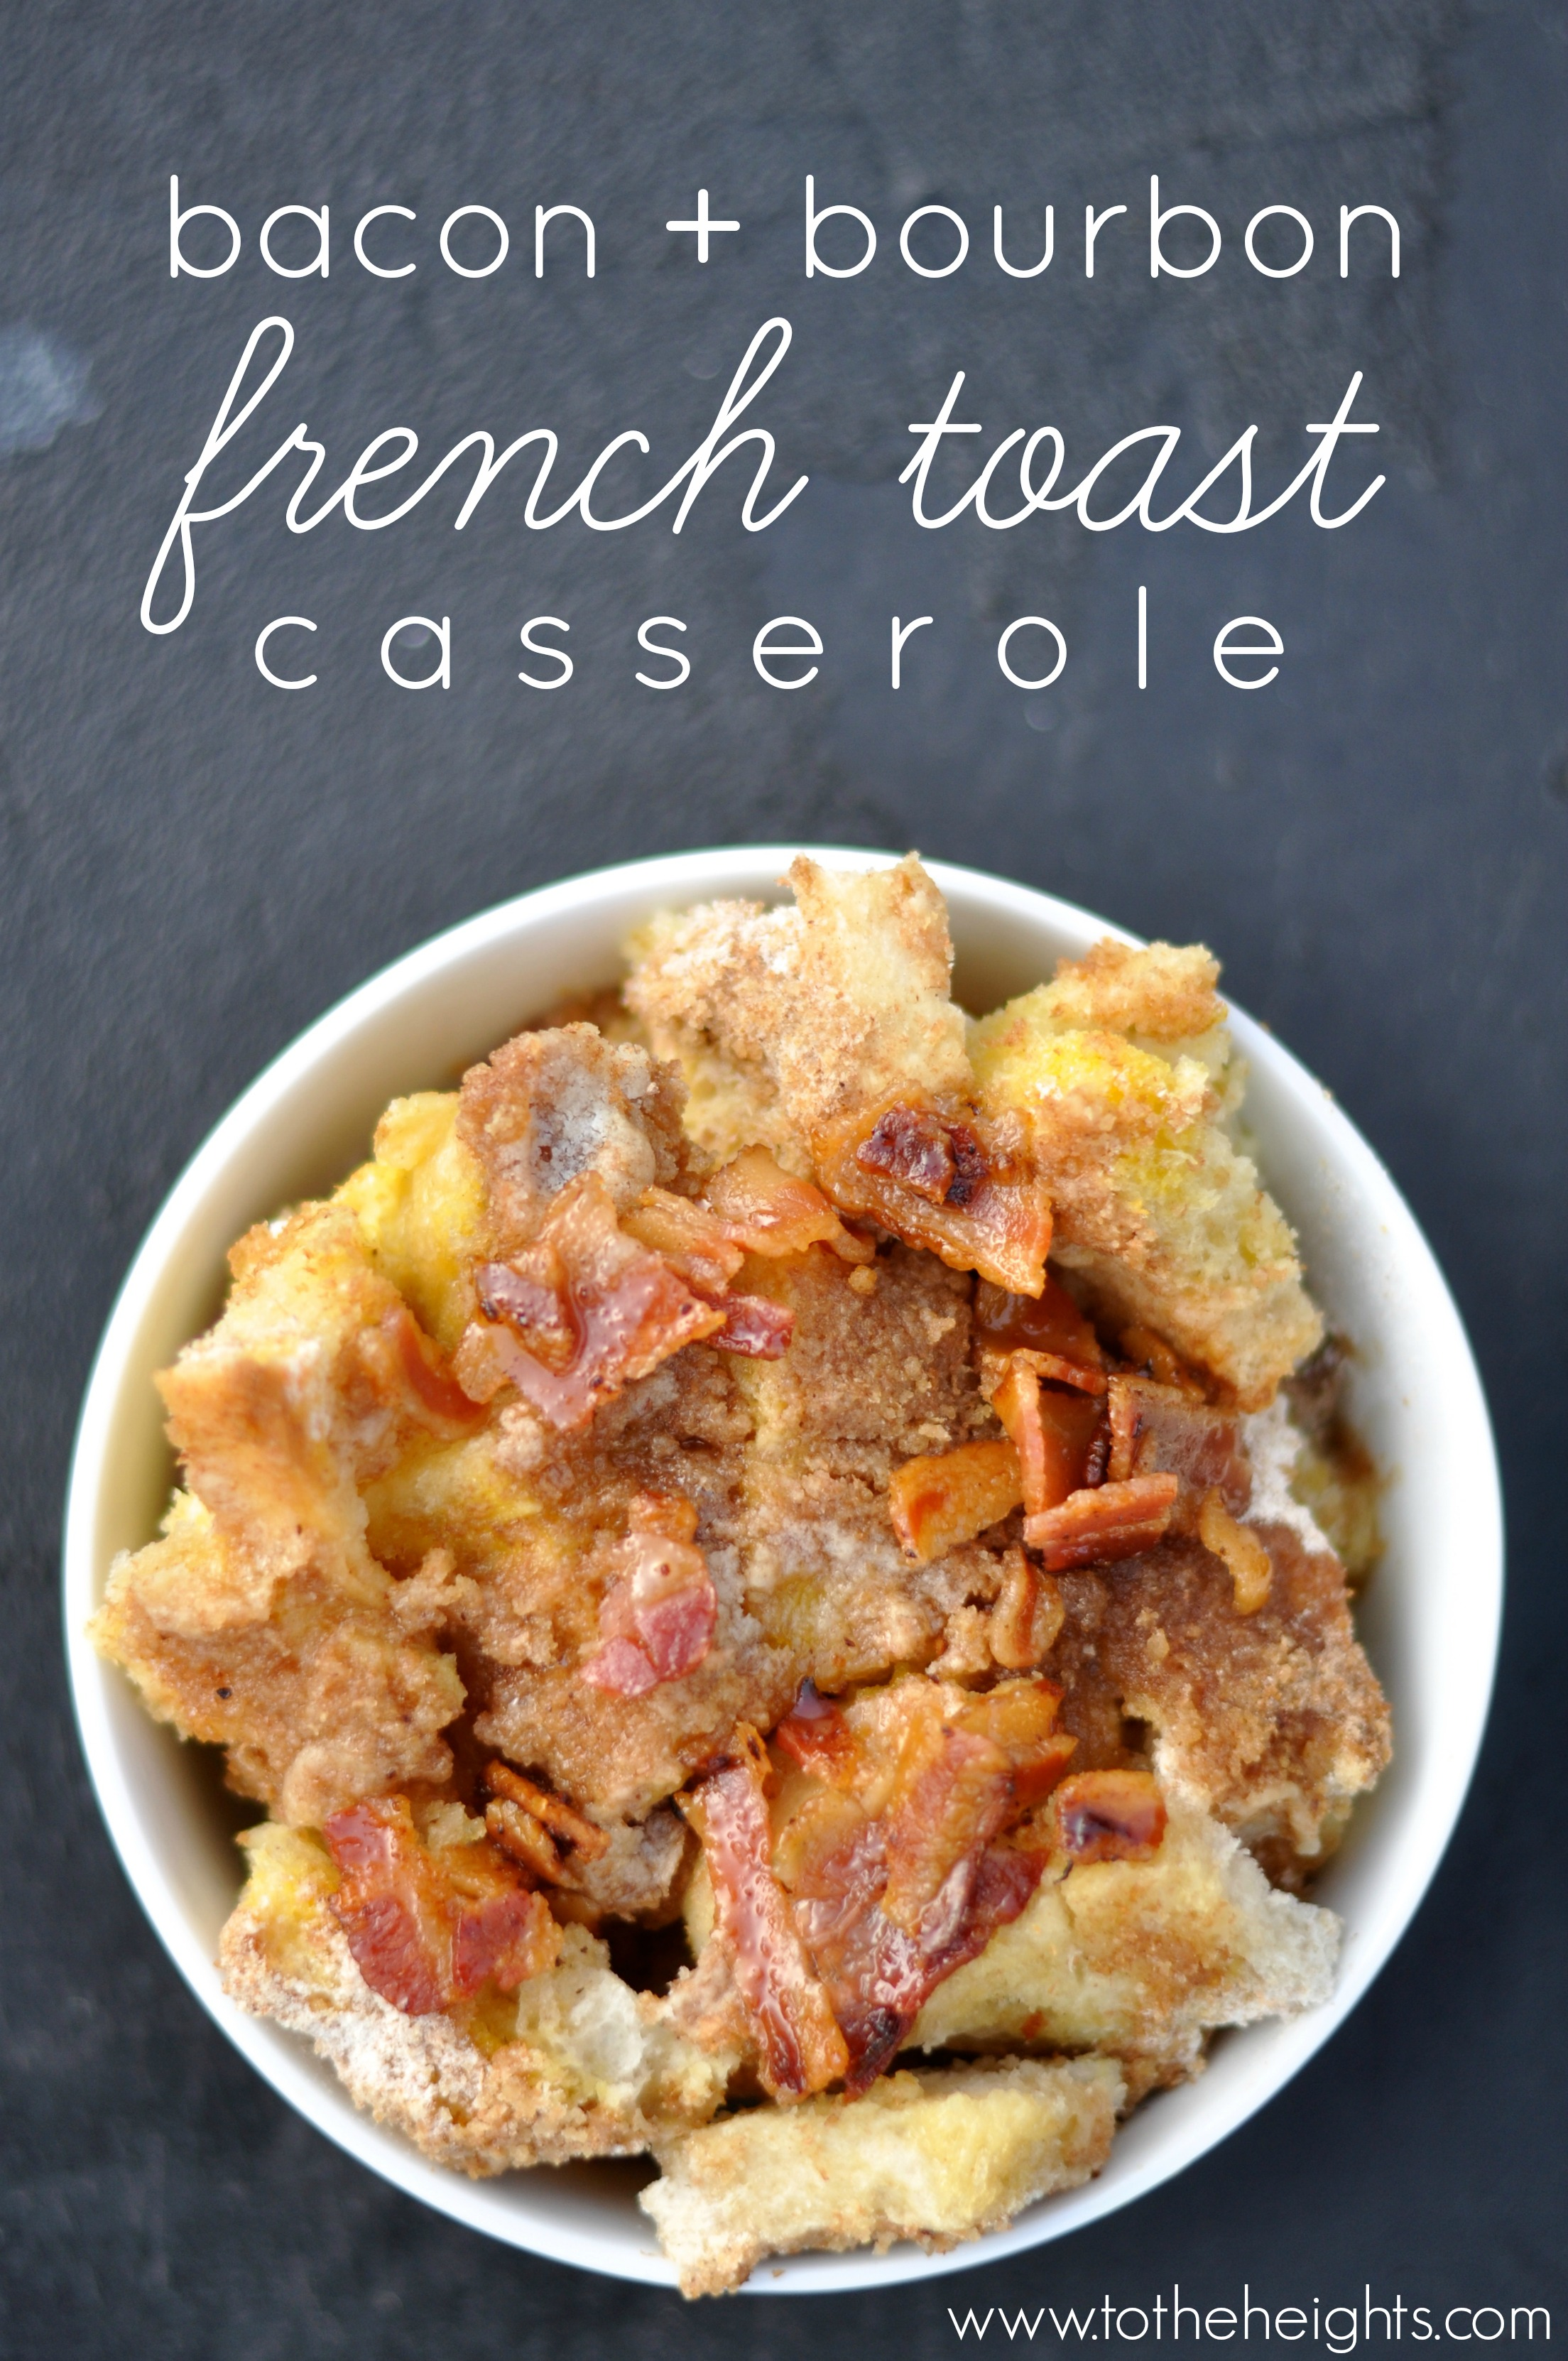 maple-bacon-bourbon-french-toast-casserole-pinterest